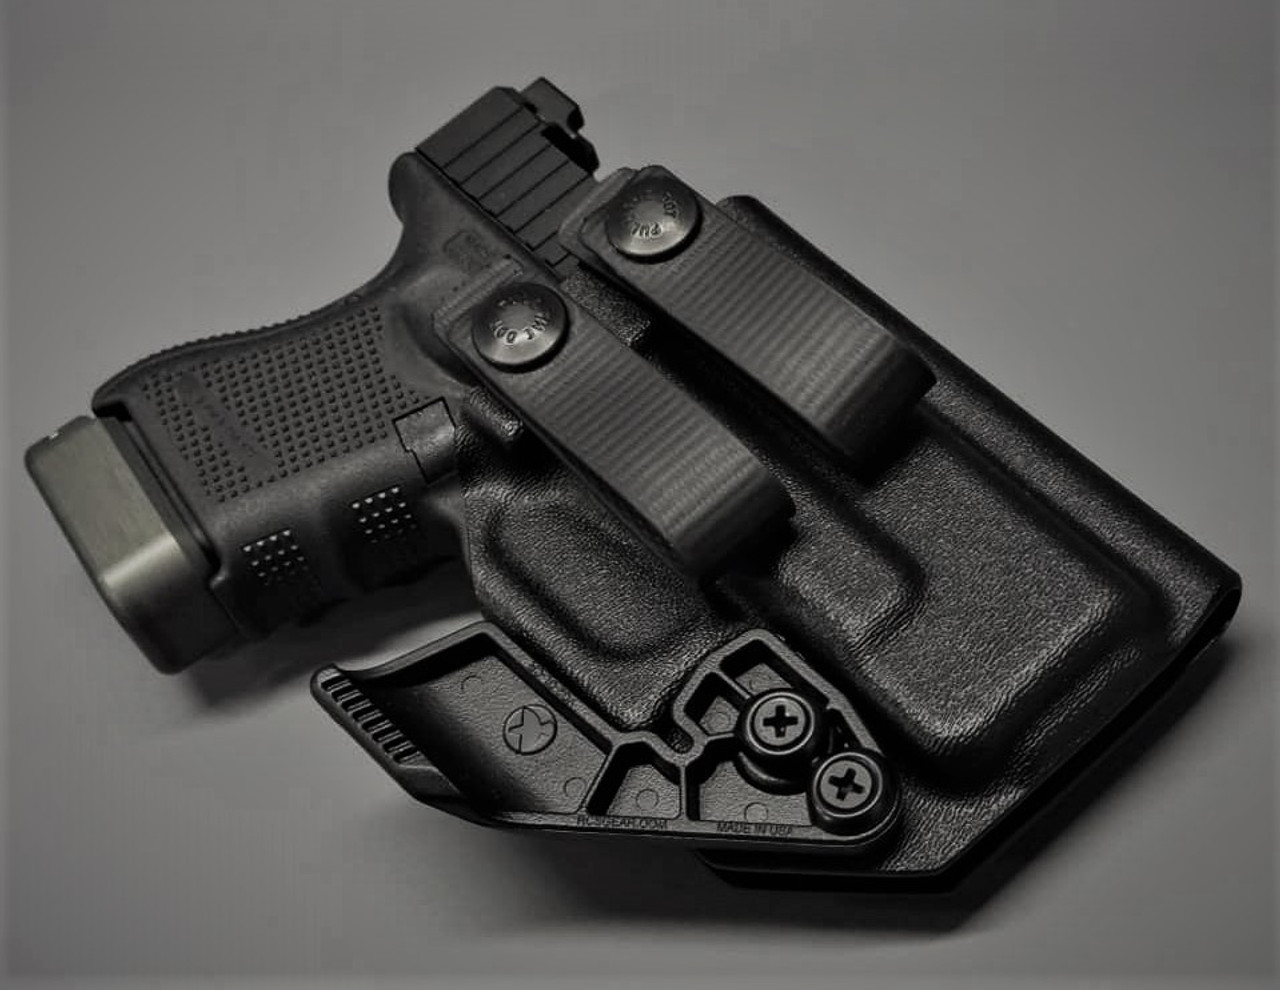 Glock 26 Appendix Carry Holster with Soft Loops